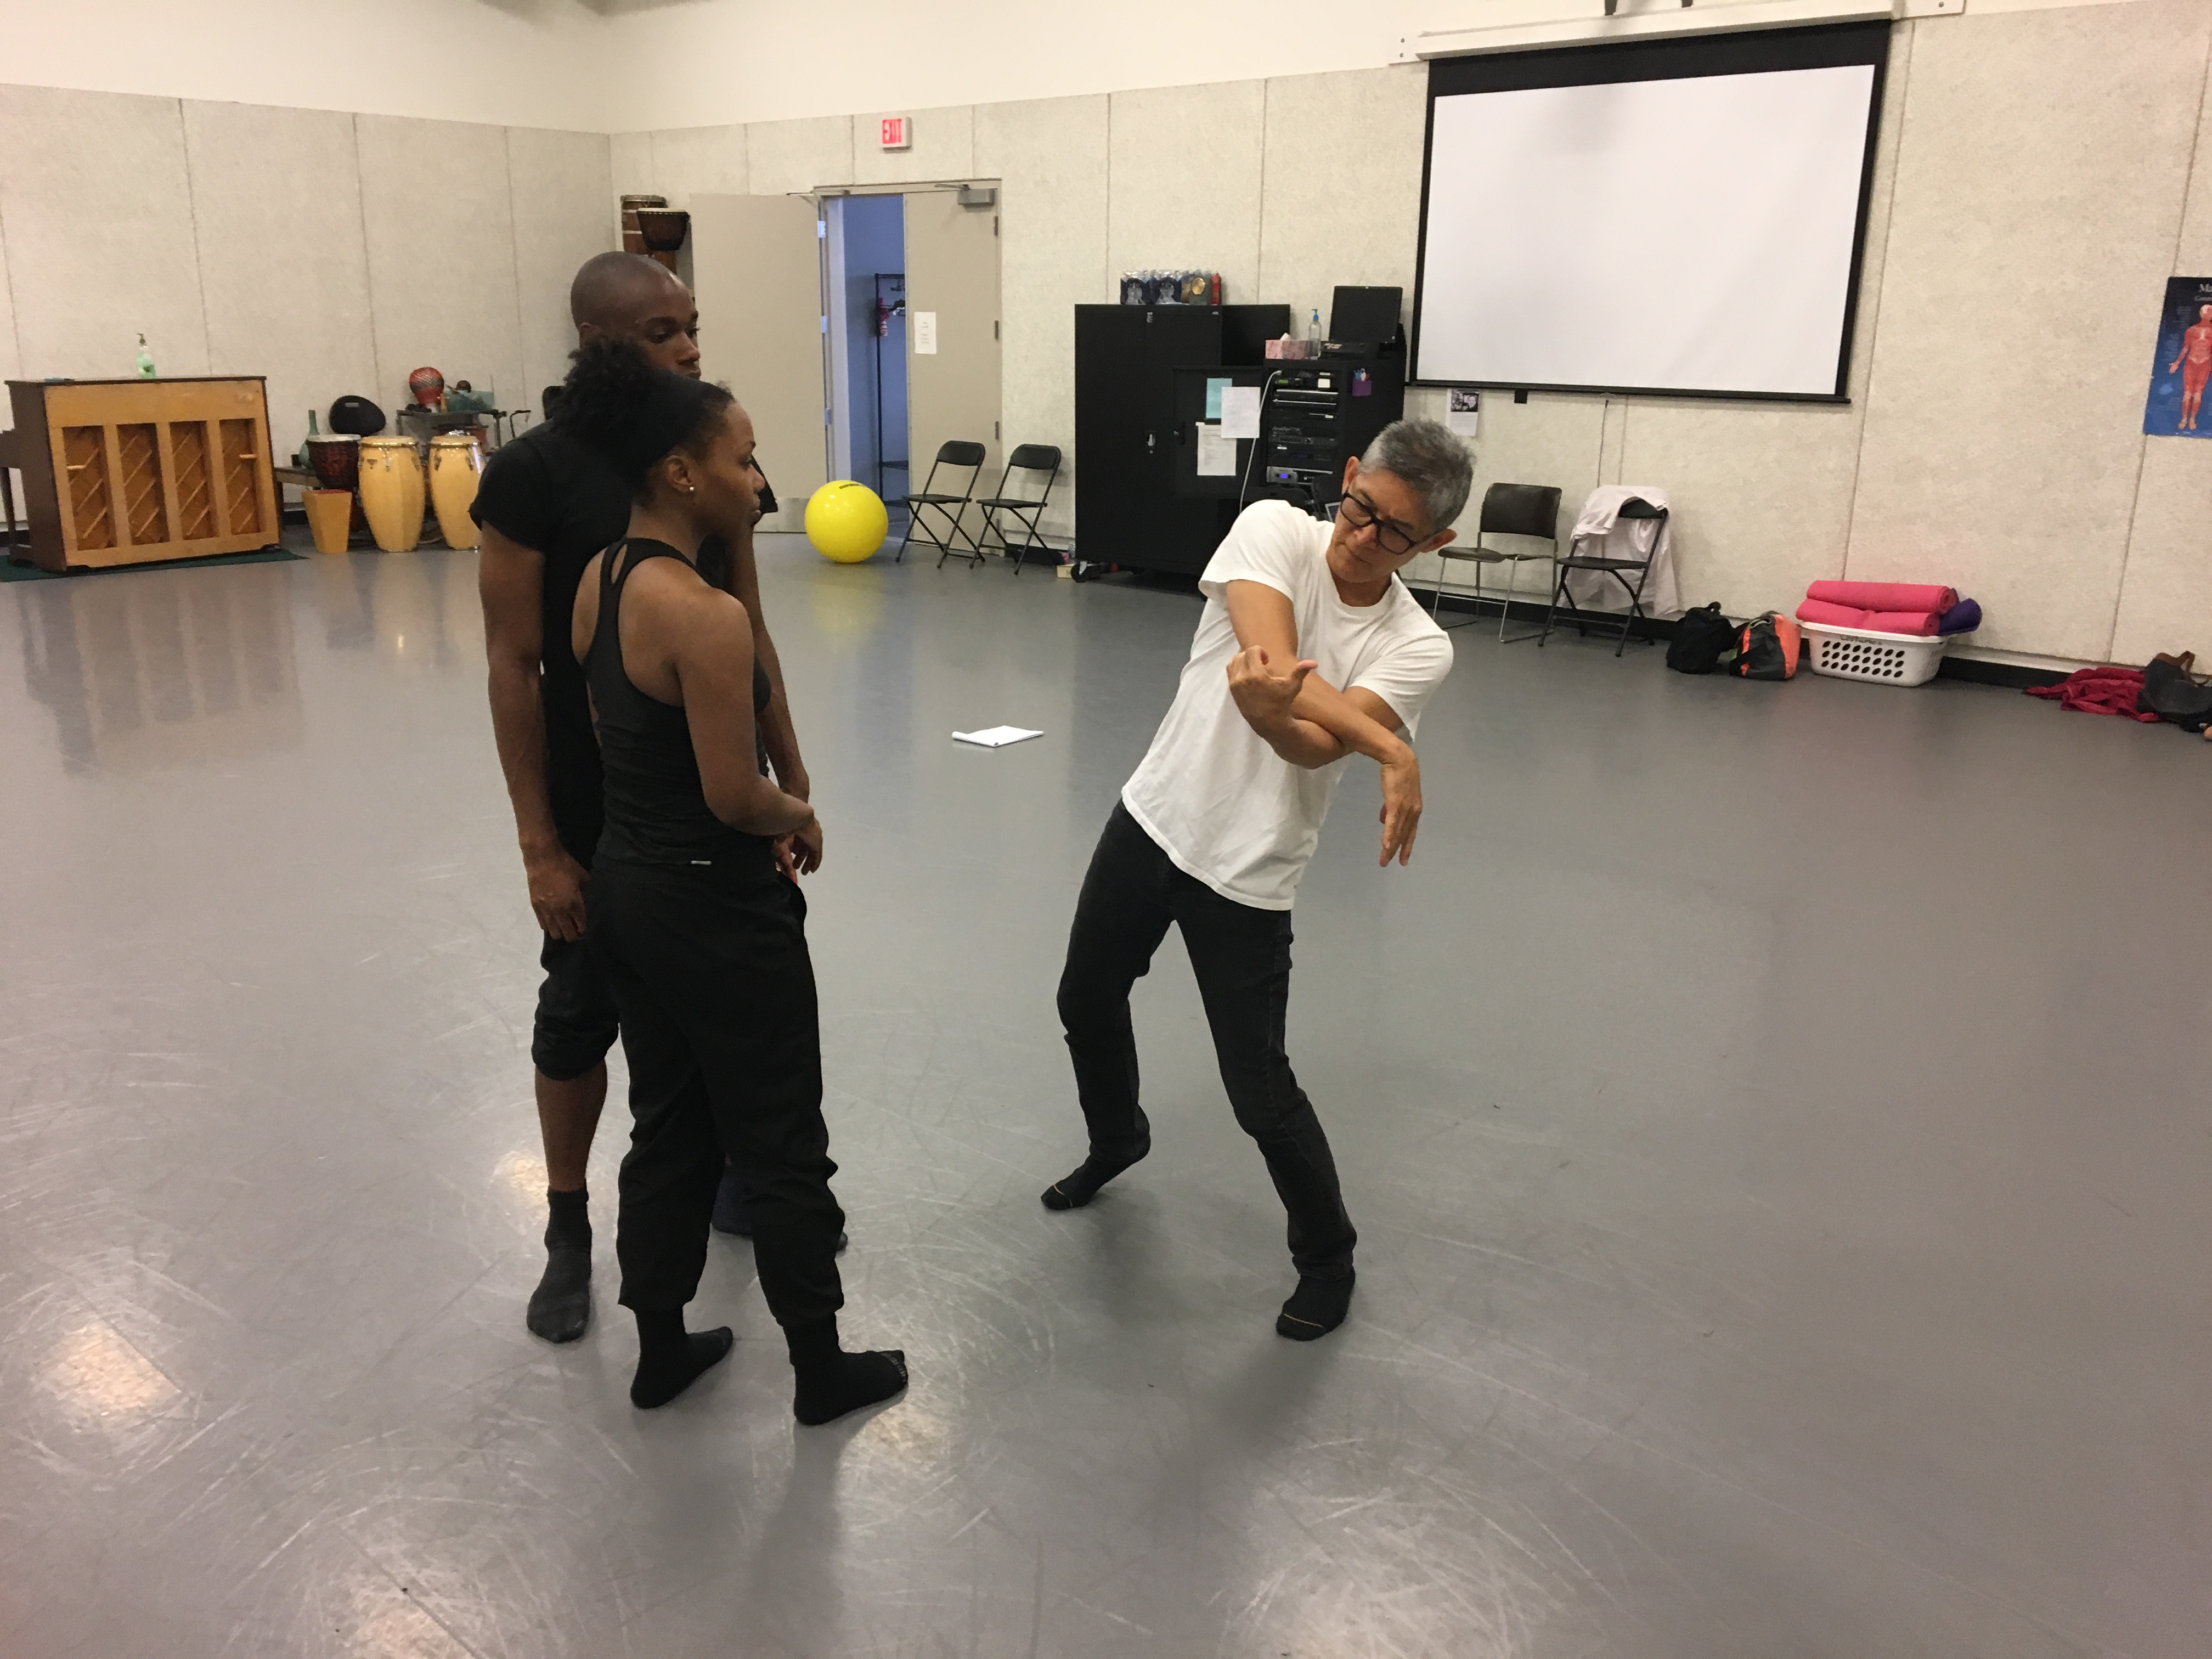 David Shimotakahara working with dancers Alexis Britford and Robert Rubama